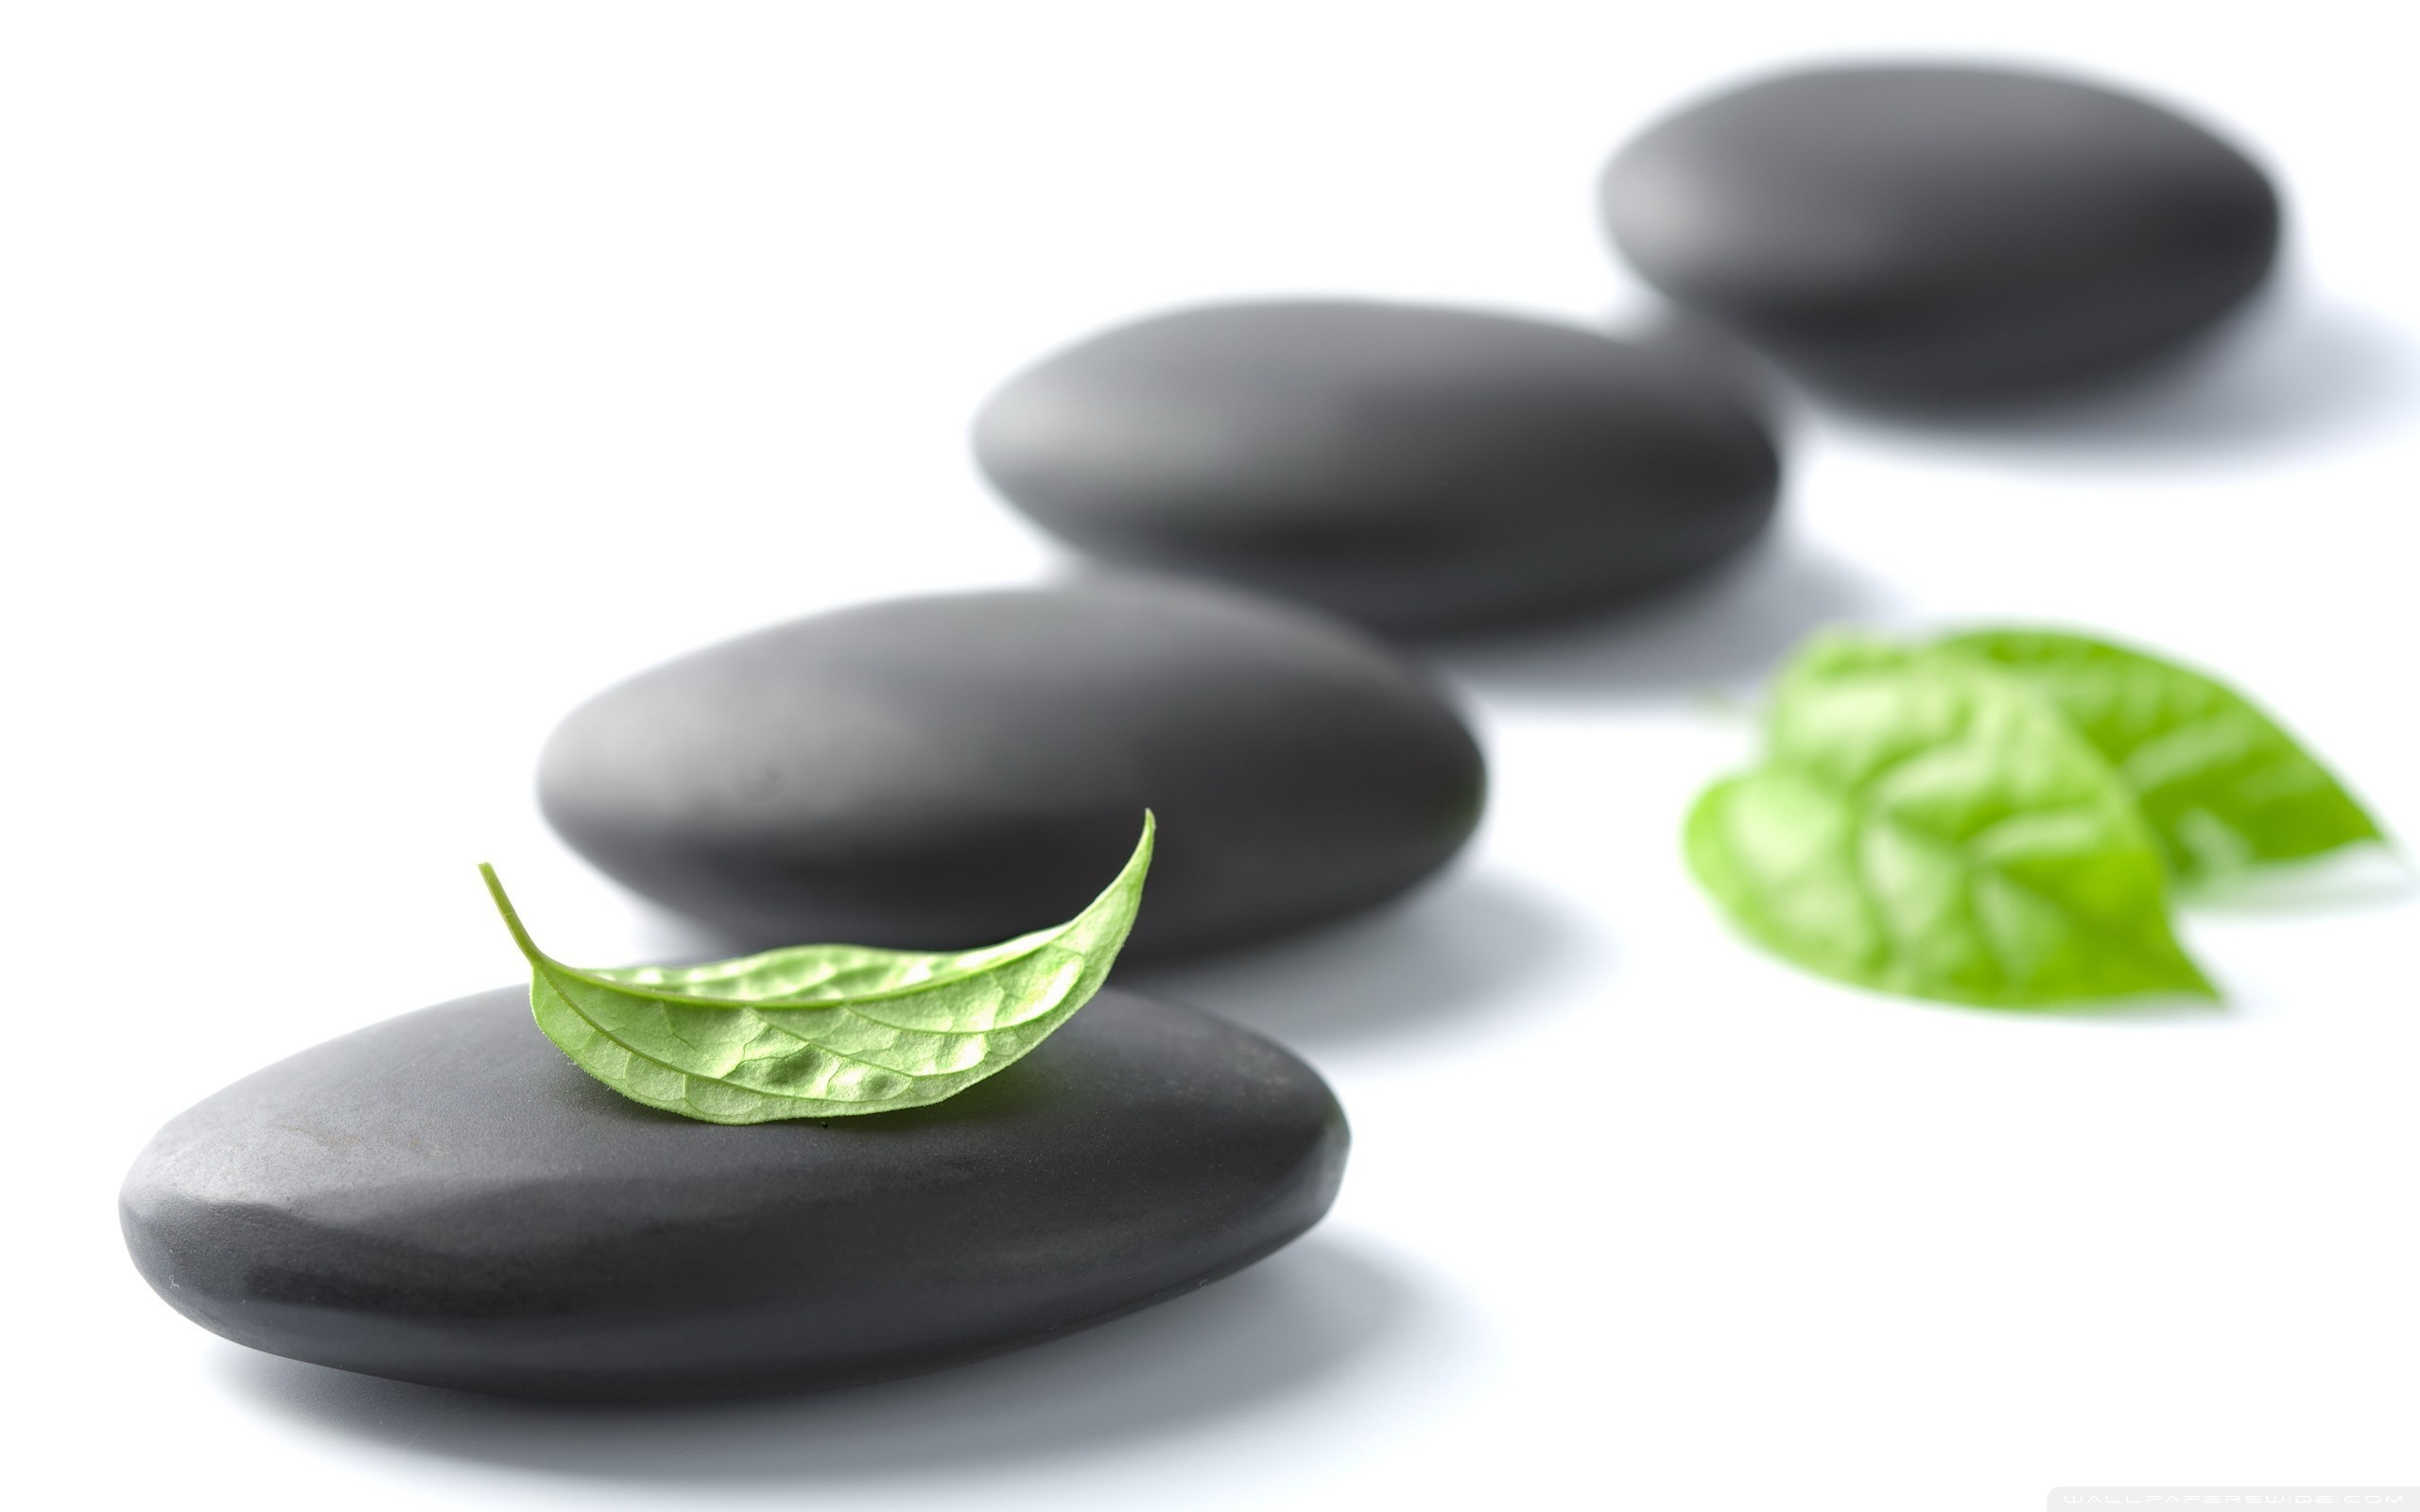 49 Zen Images and Wallpapers for Mac, PC | HBC333 Gallery